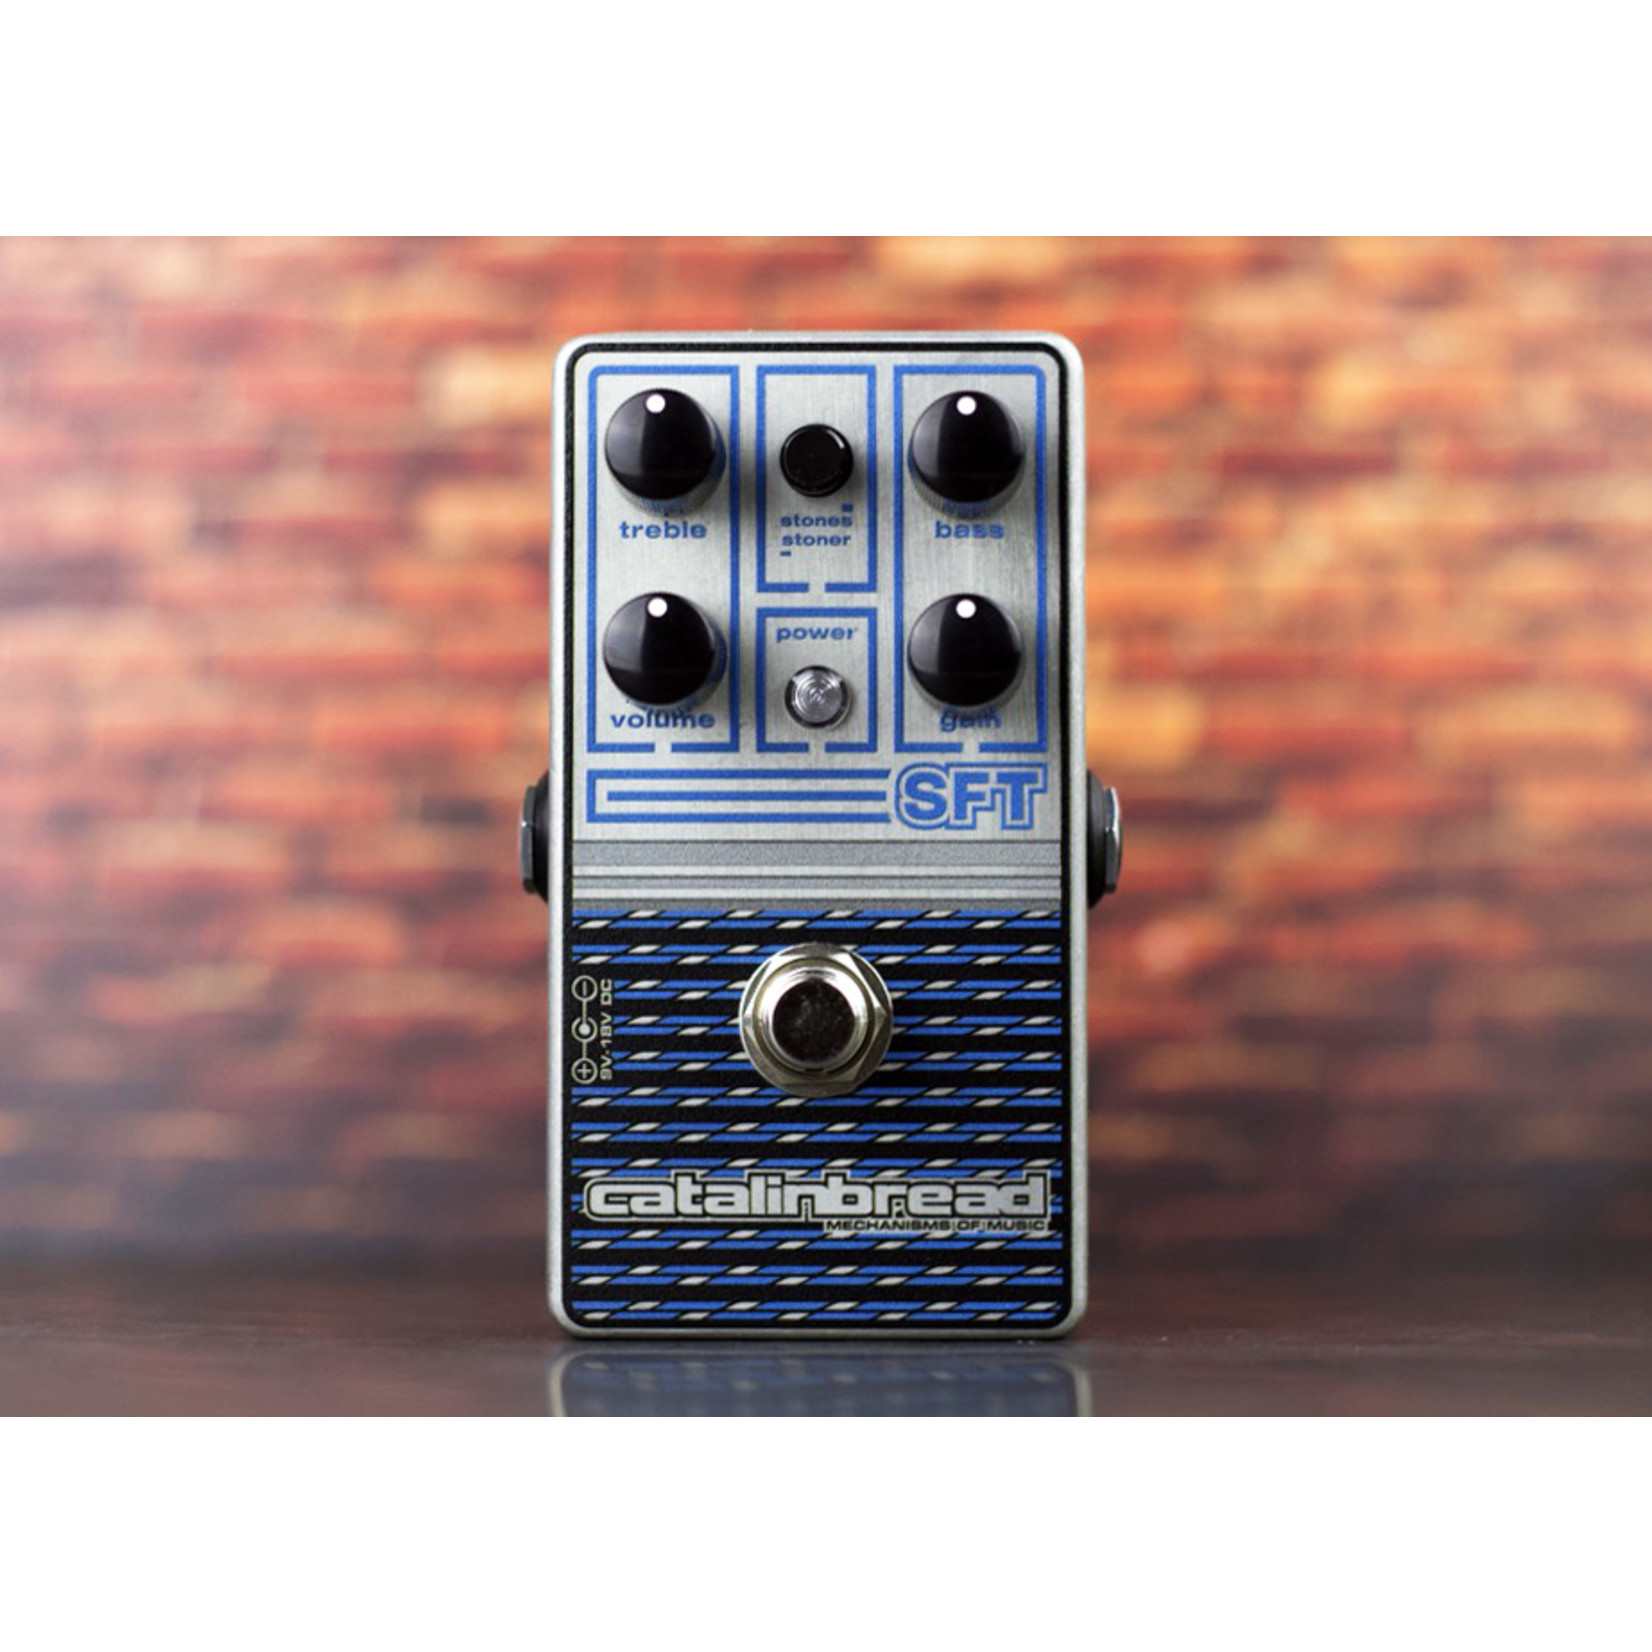 Catalinbread Catalinbread SFT Ampeg-Inspired Foundational Overdrive - New Metallic Sapphire Finish for 2021!